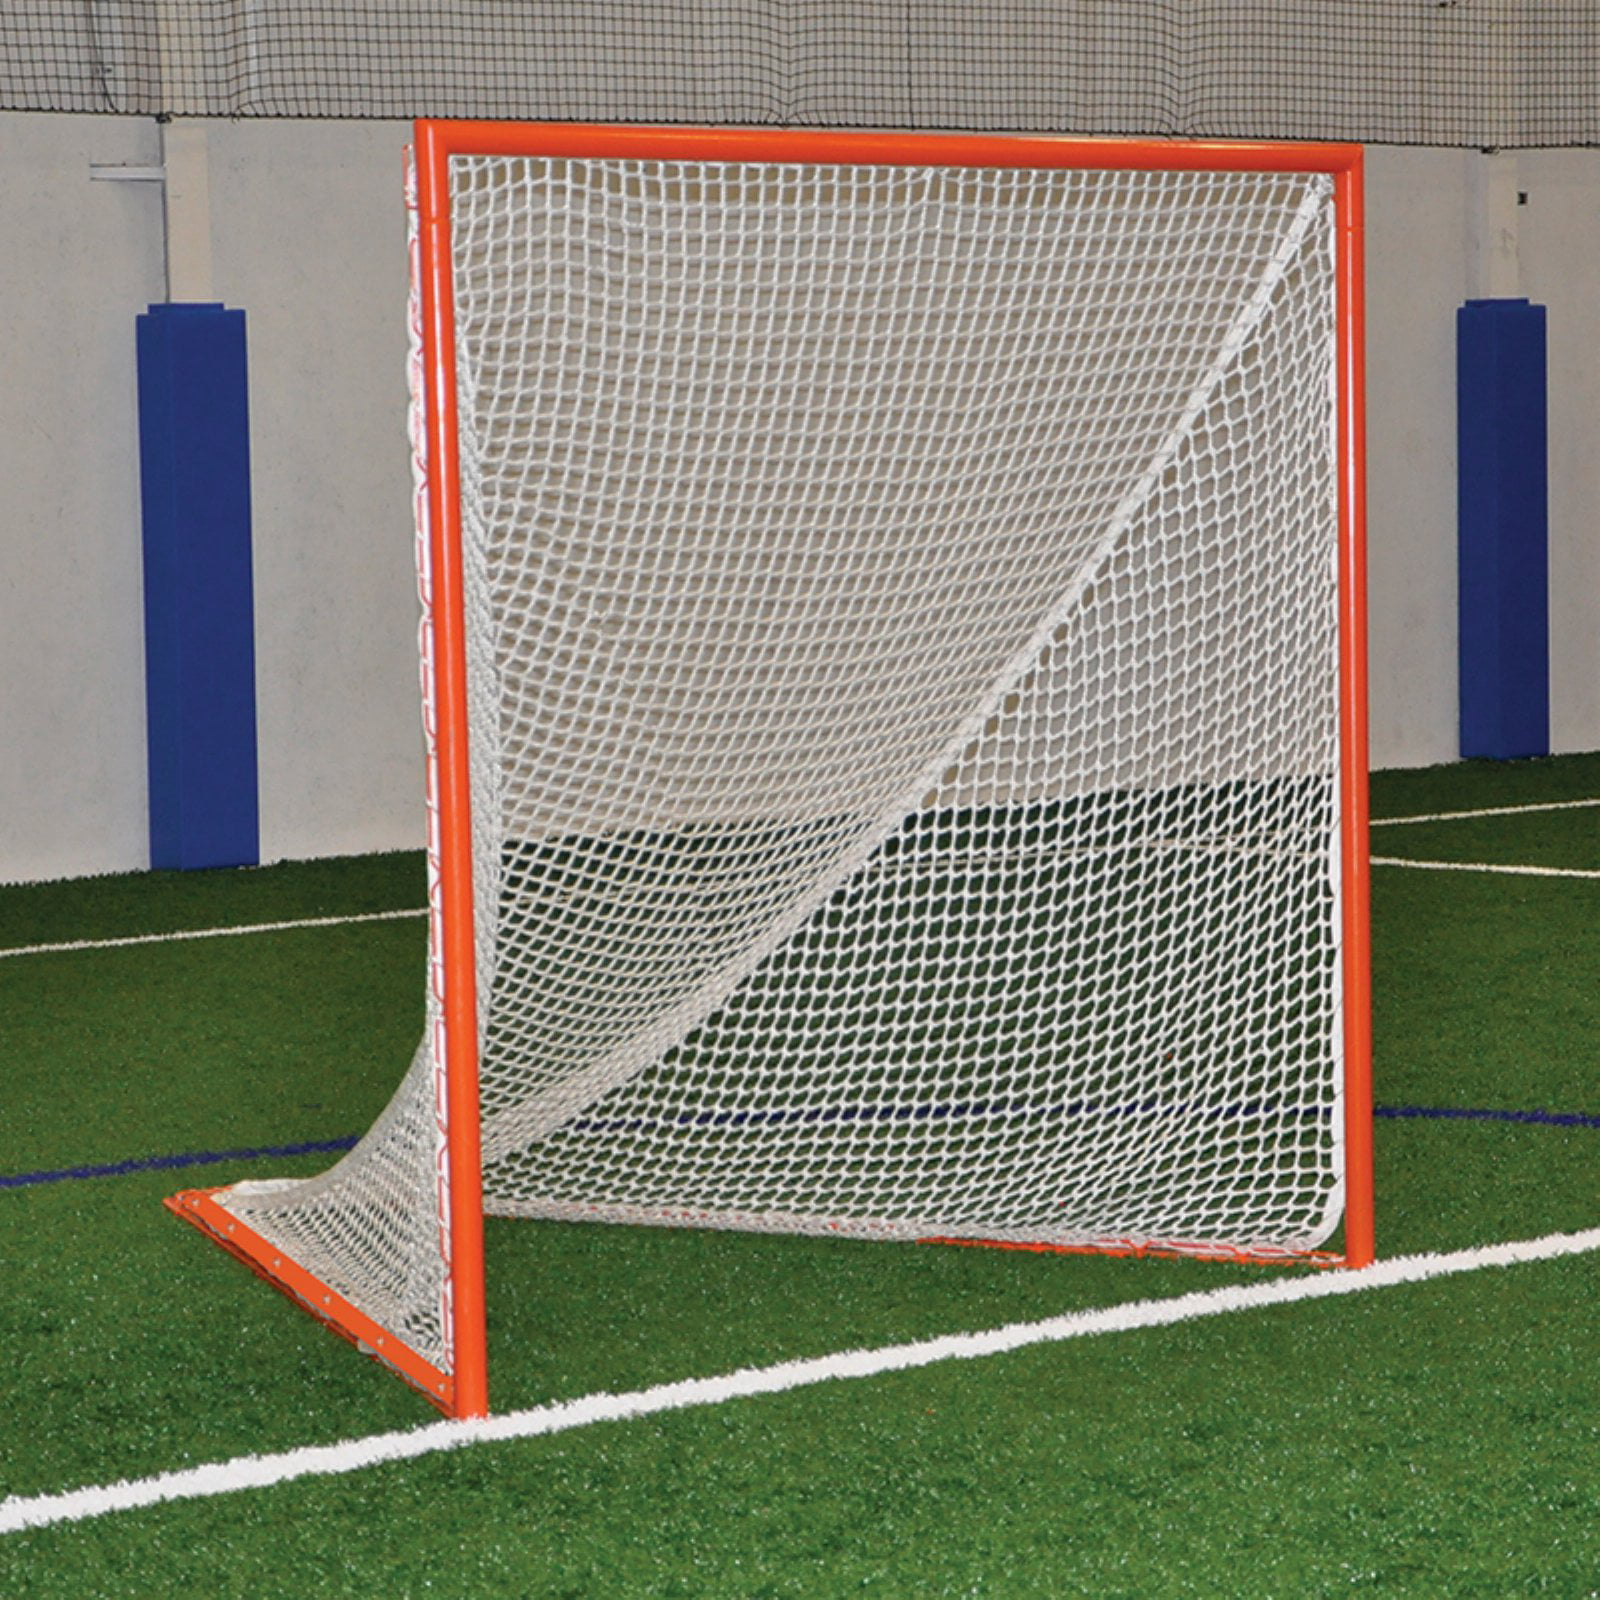 Jaypro Deluxe Official Lacrosse Goals by